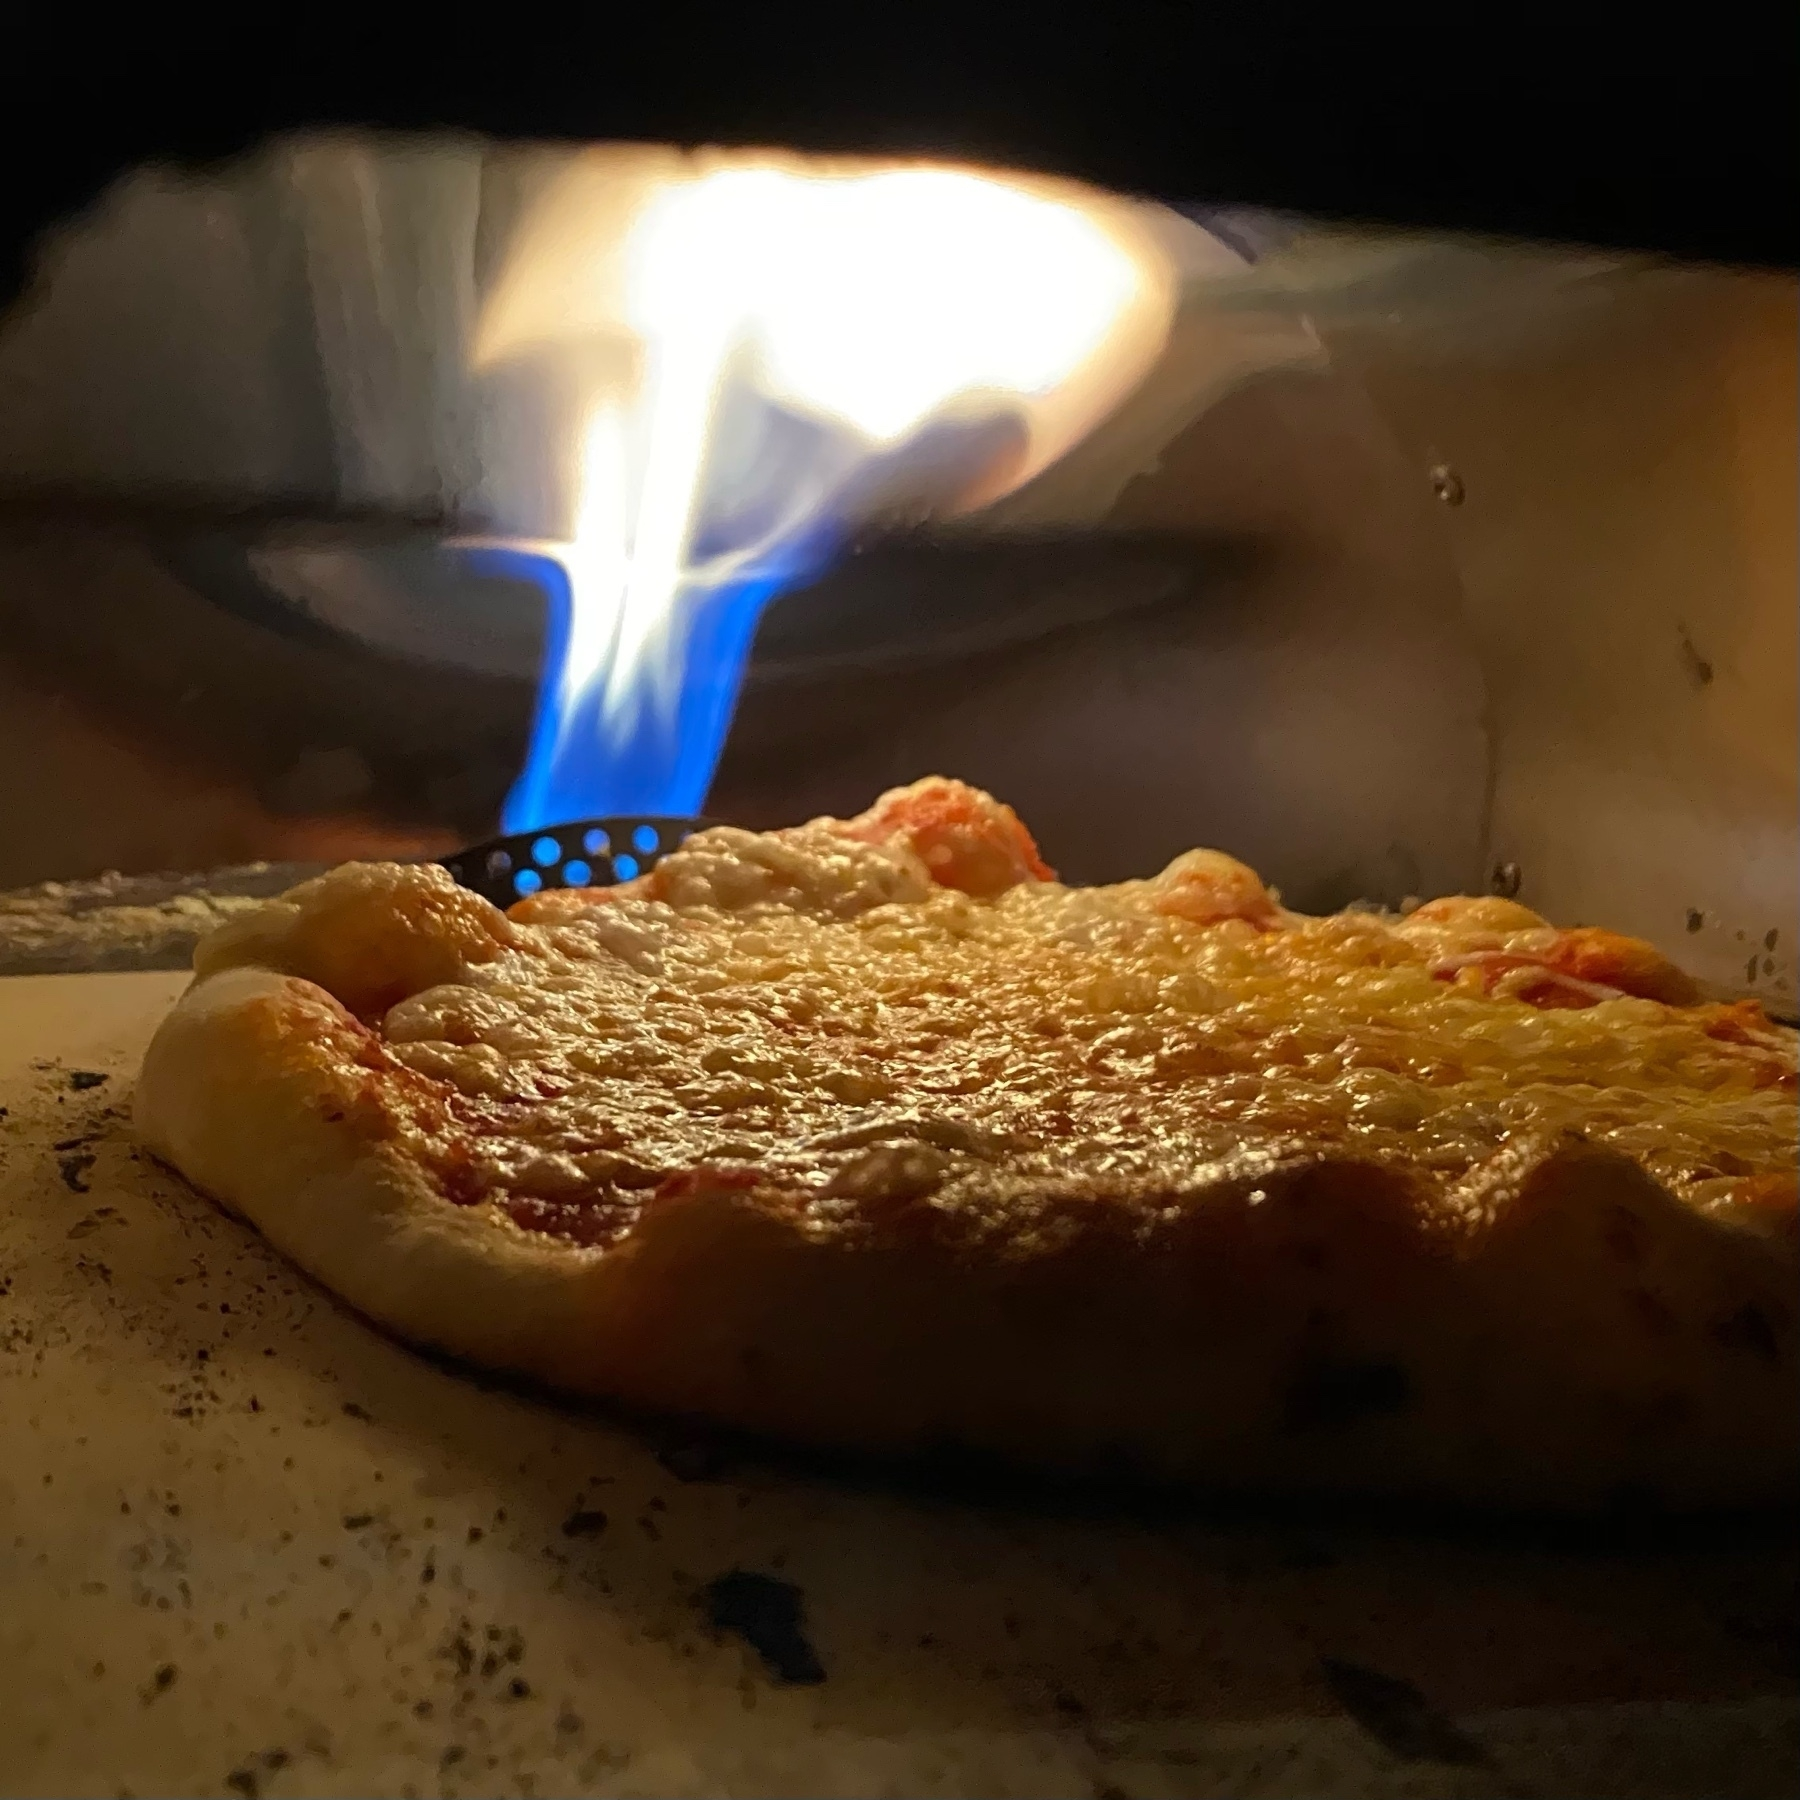 cheese pizza baking in an oven